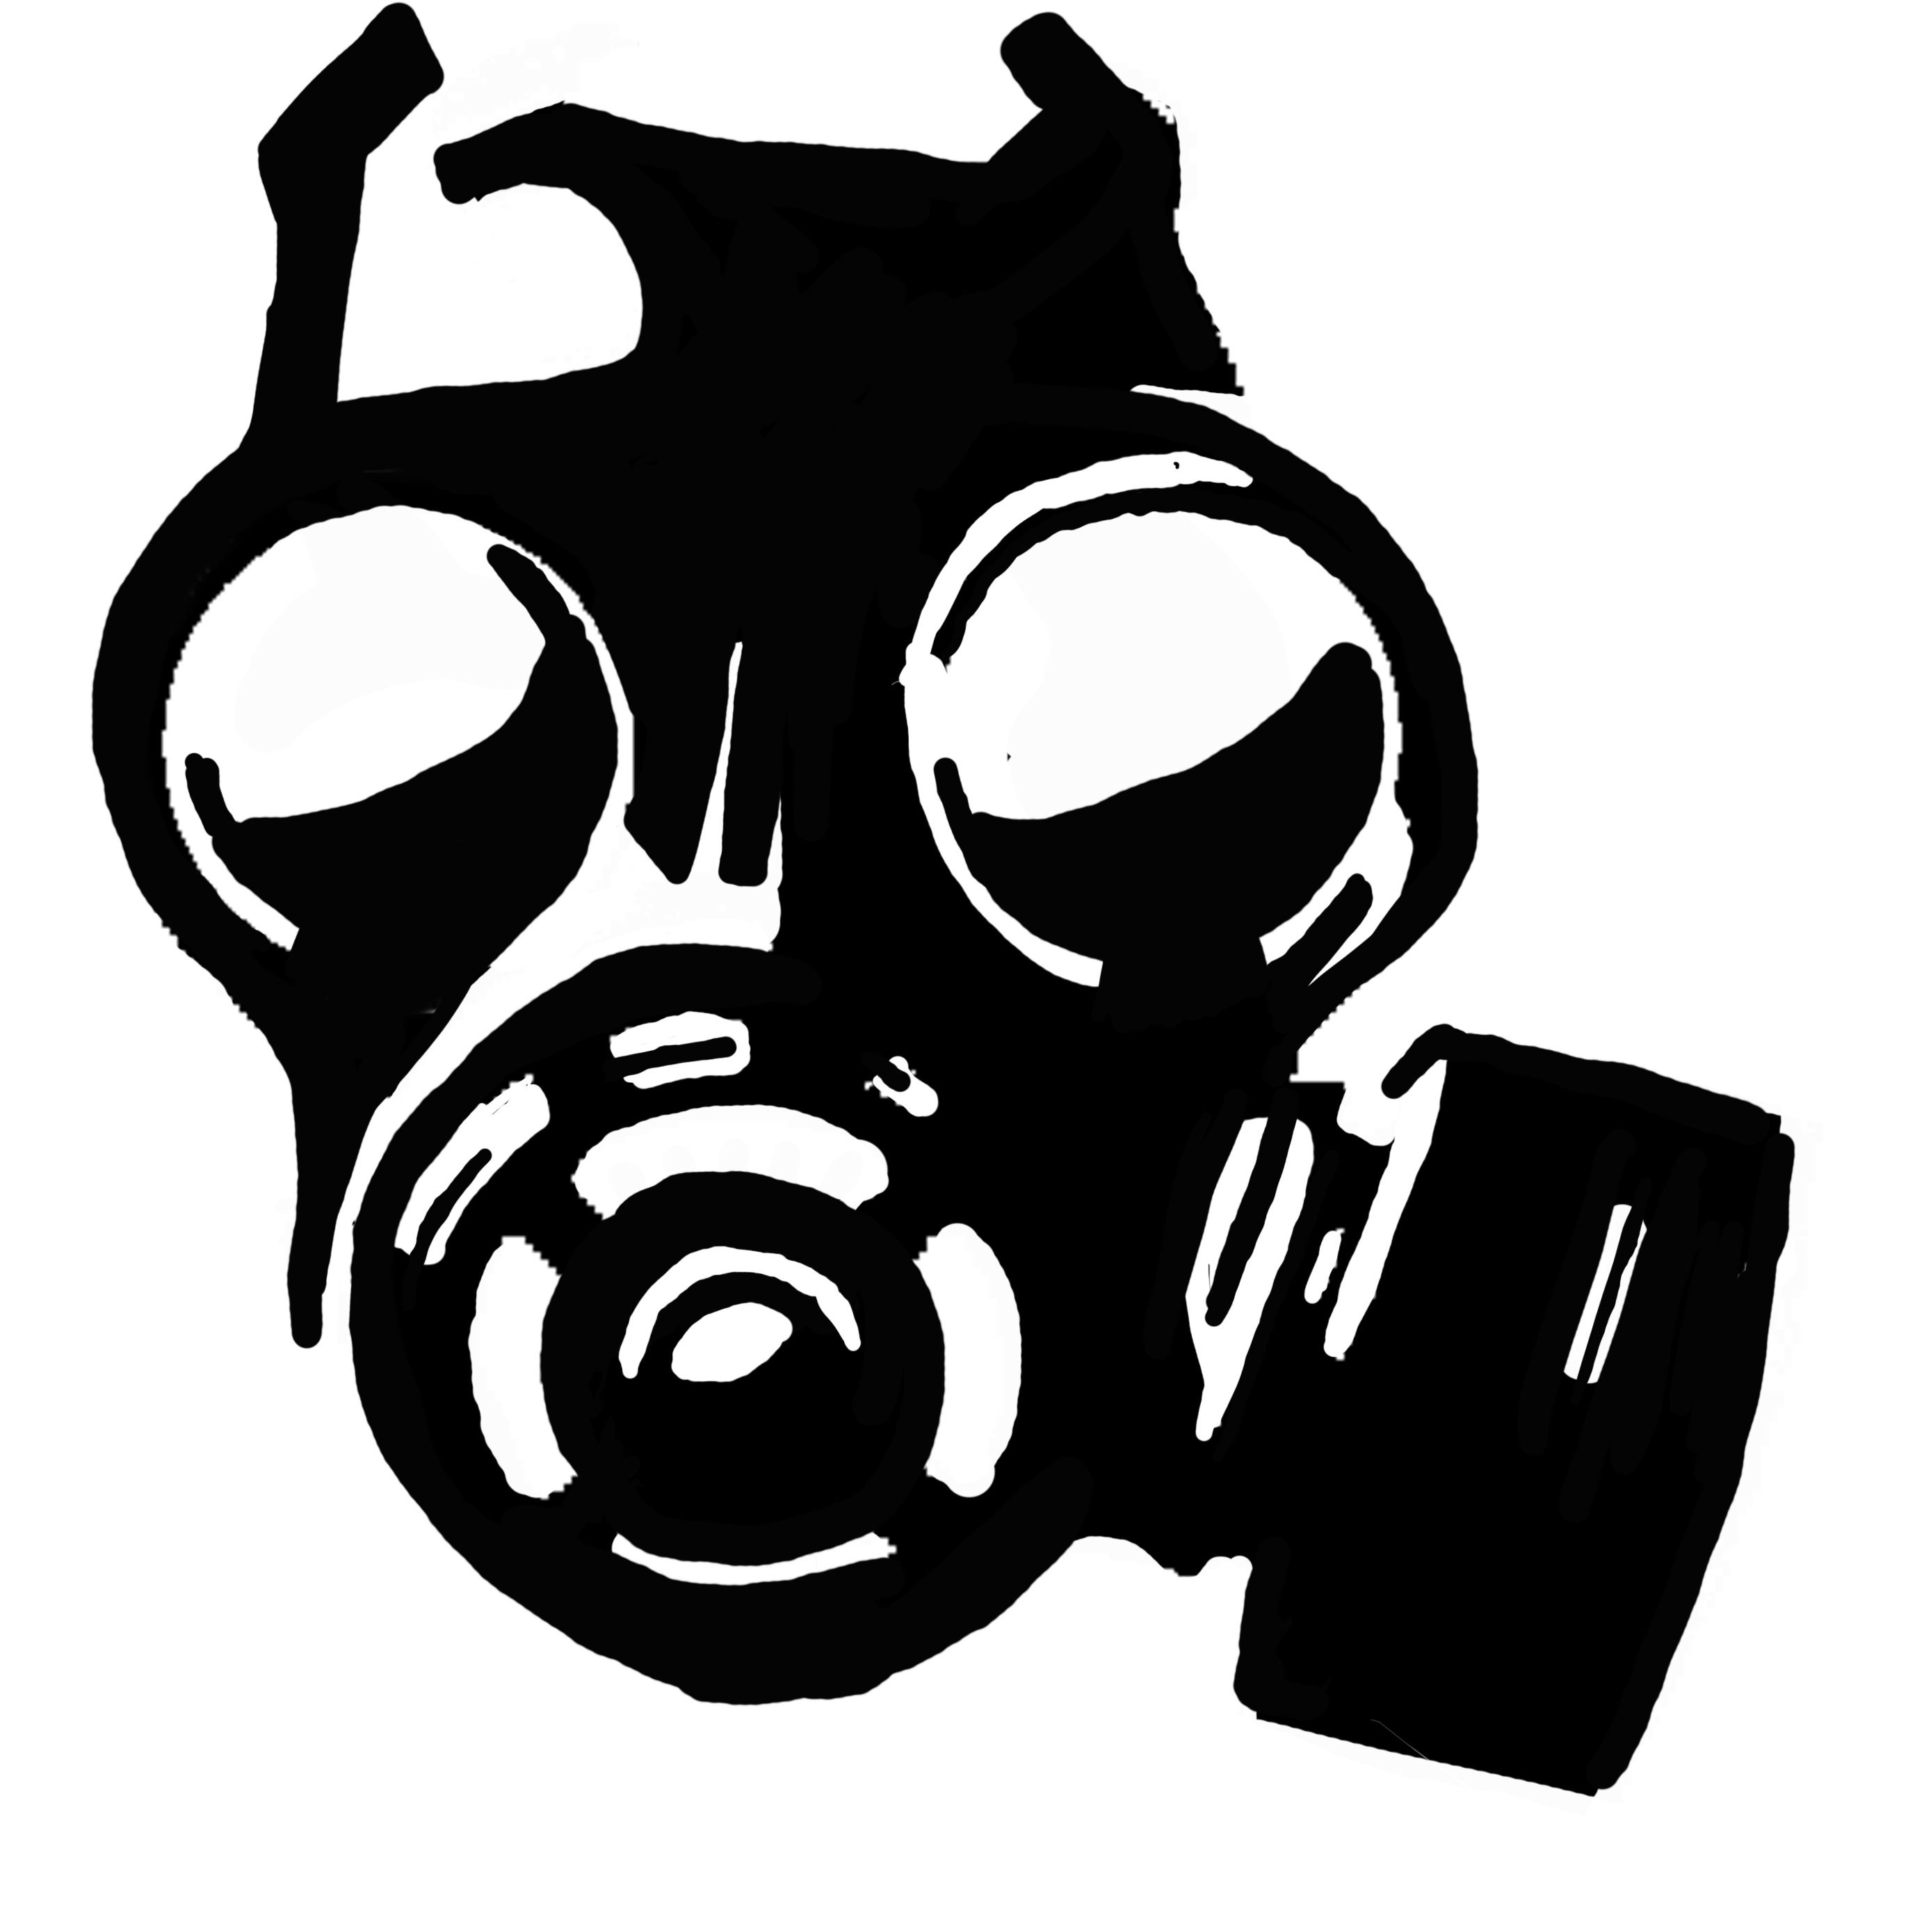 2744x2778 Graffiti Skull Gas Mask Outline